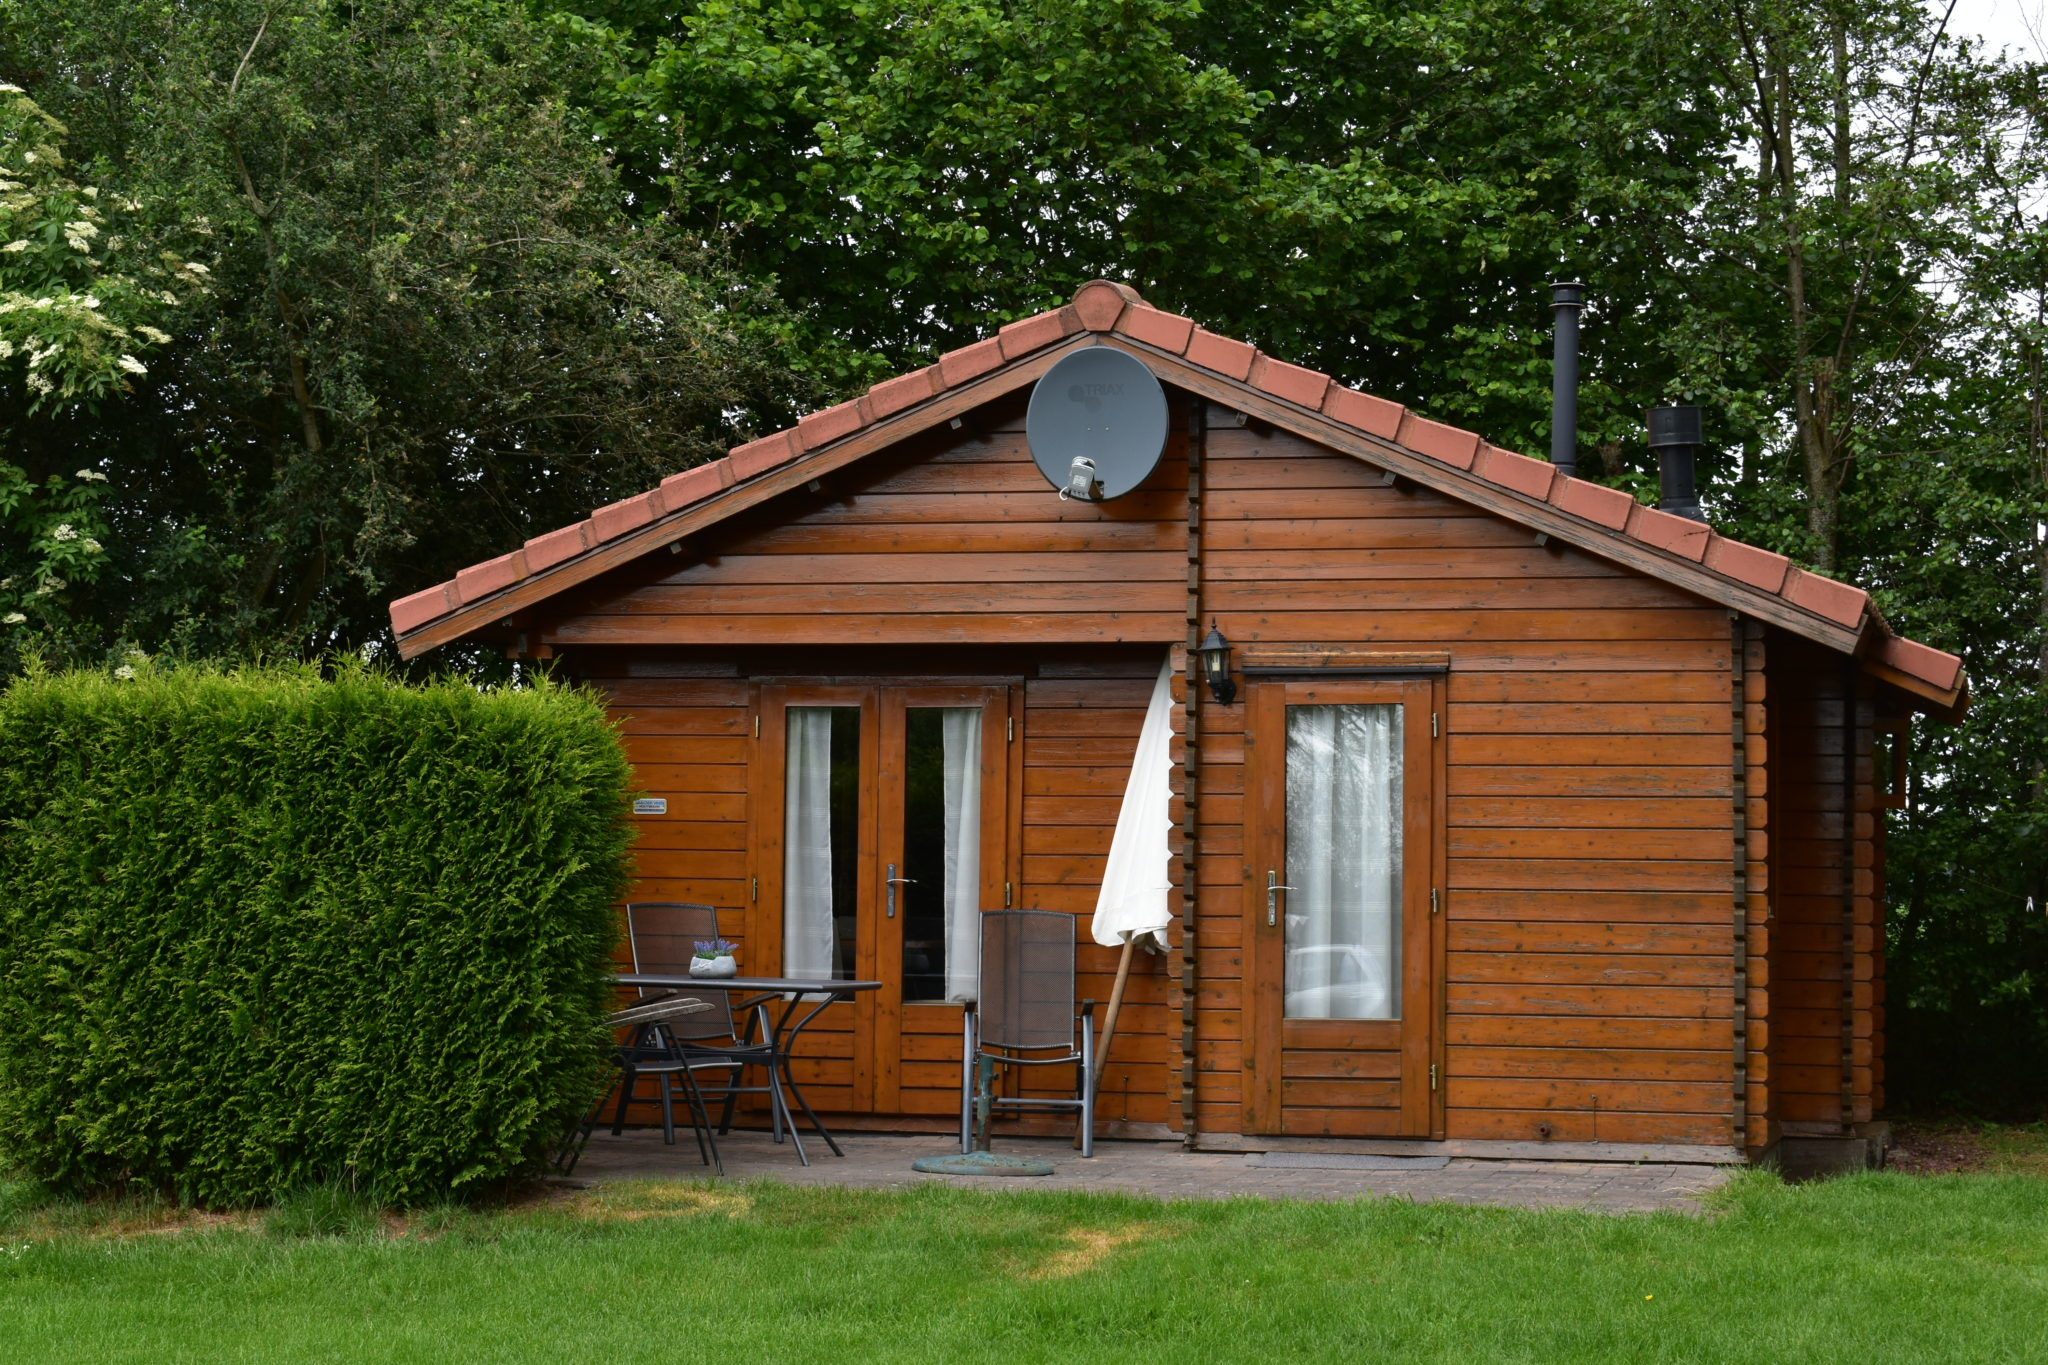 camping harminahoeve chalet